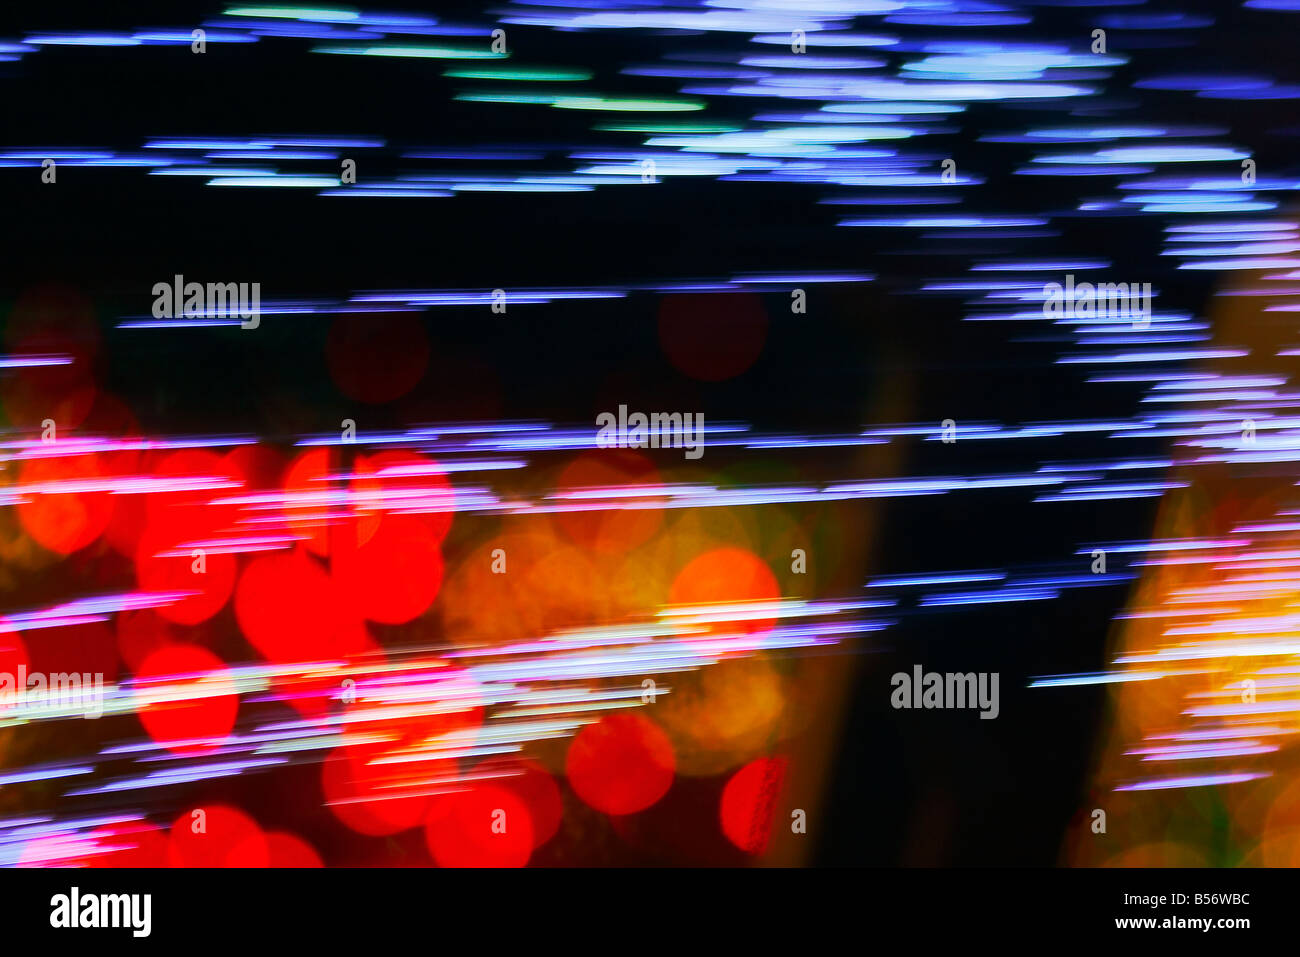 Christmas lights at the Mormon Temple Festival of Lights reflected in the body of a black parked car Stock Photo